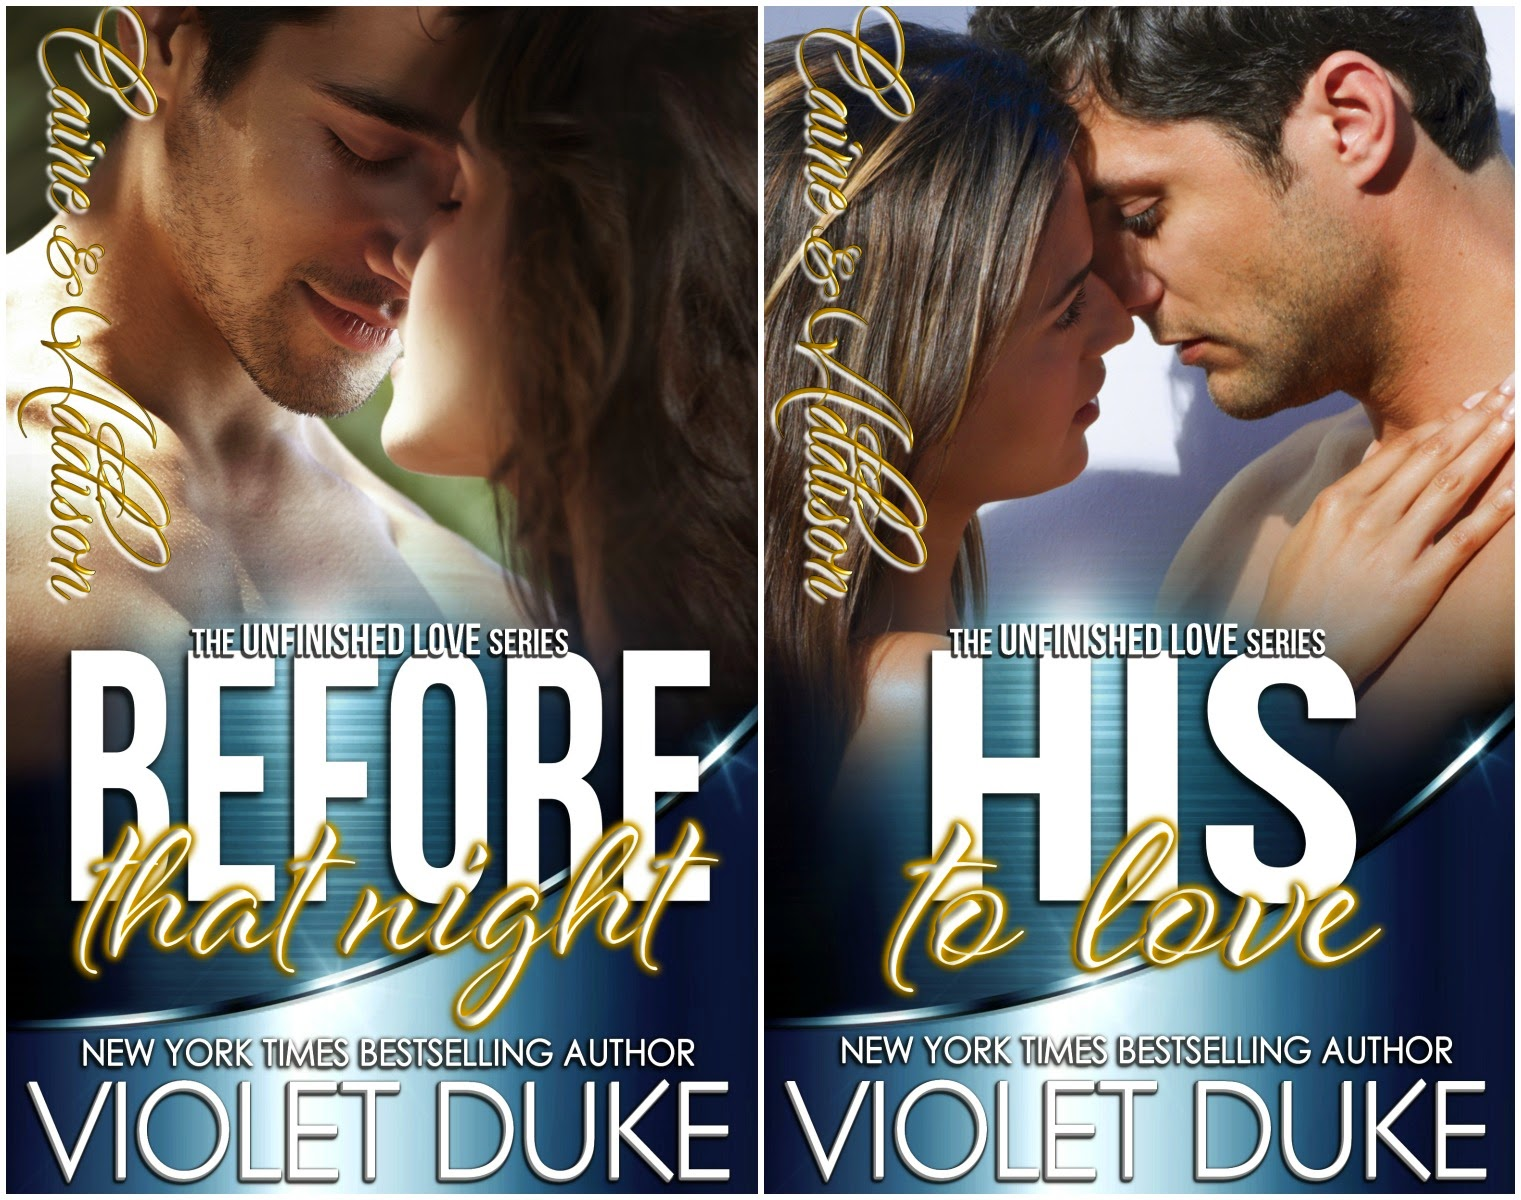 Cover Reveal: Before That Night and His to Love by Violet Duke